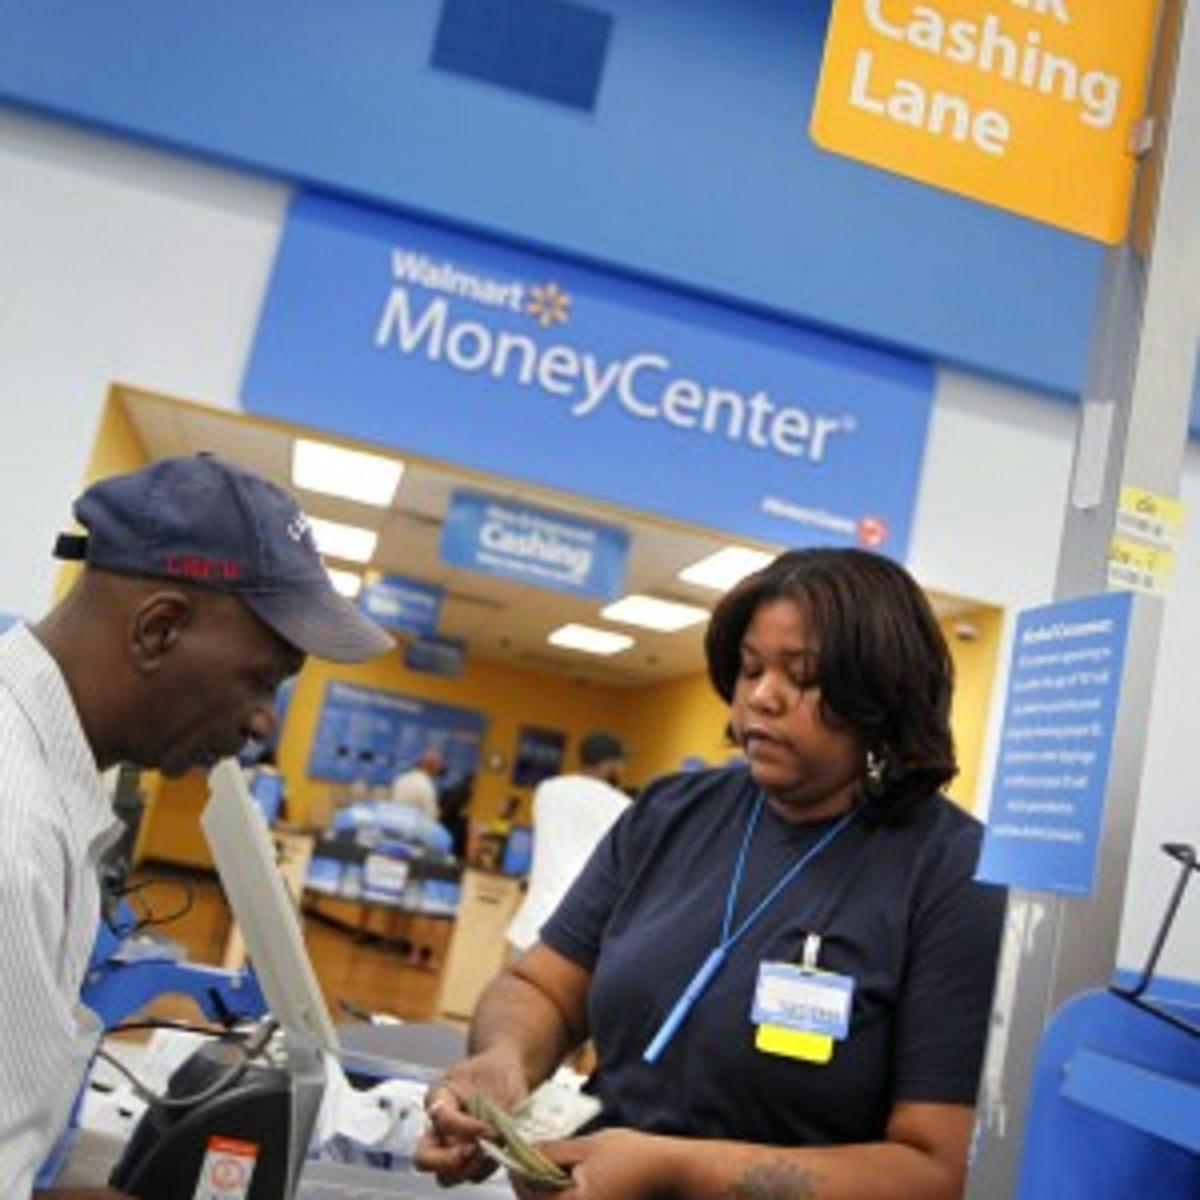 Walmart's check-cashing success draws notice from bankers